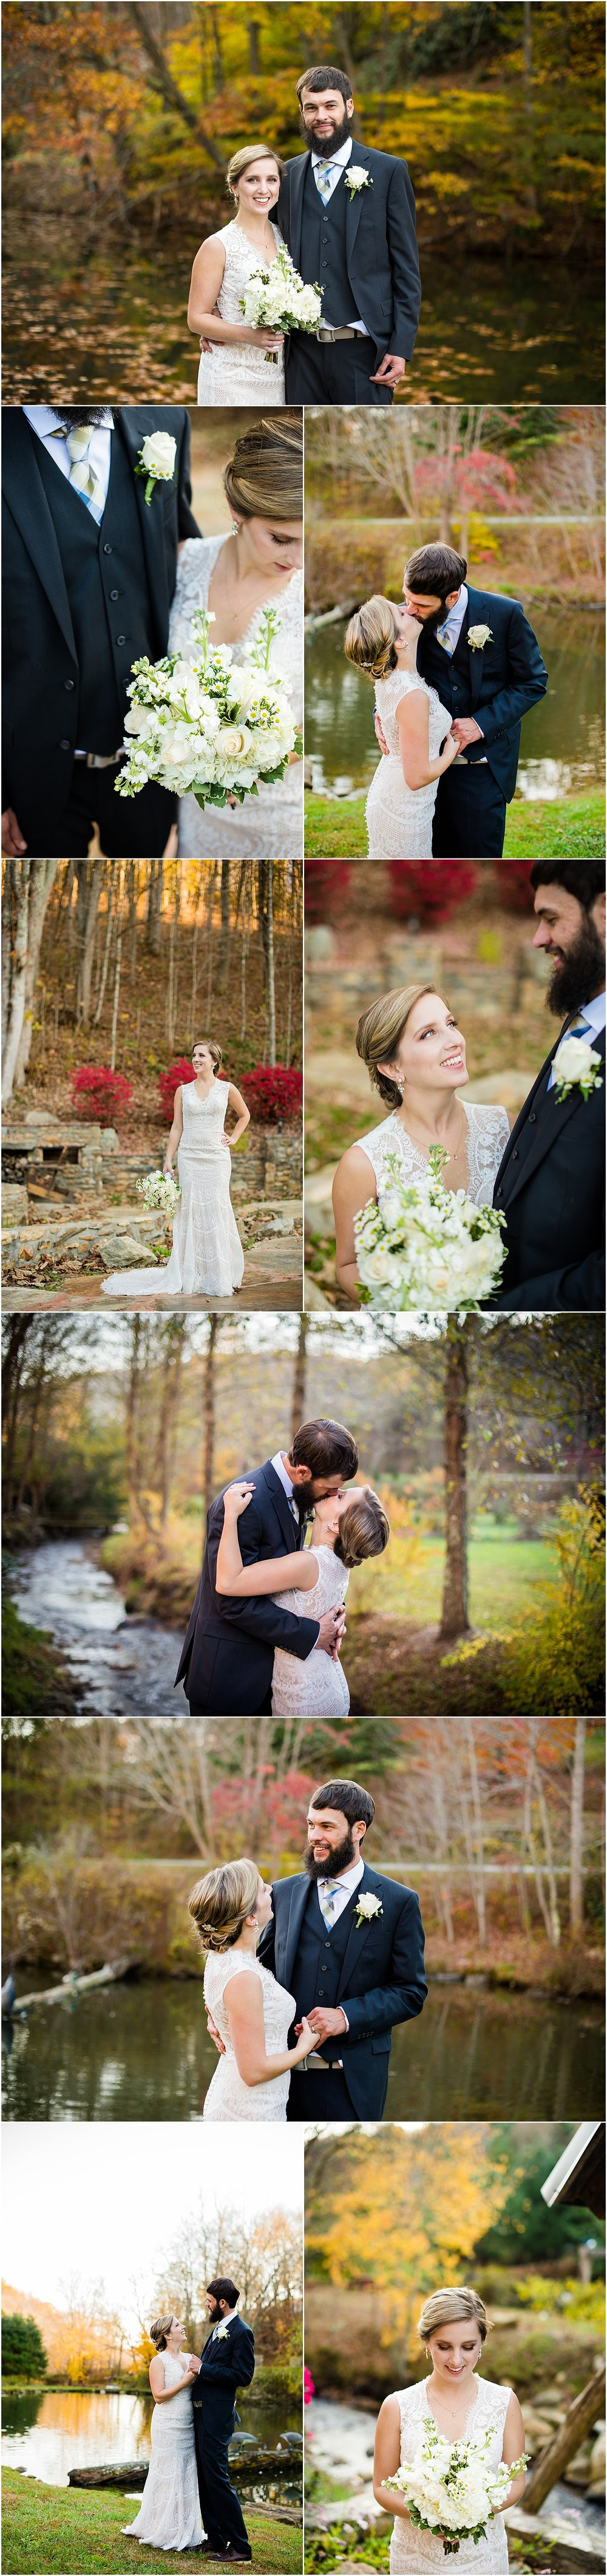 Bohemian-Earthy-Bride-Groom-Portraits-Fall-October-Wedding-Photos-Memory-Mountain-at-Wolf-Laurel